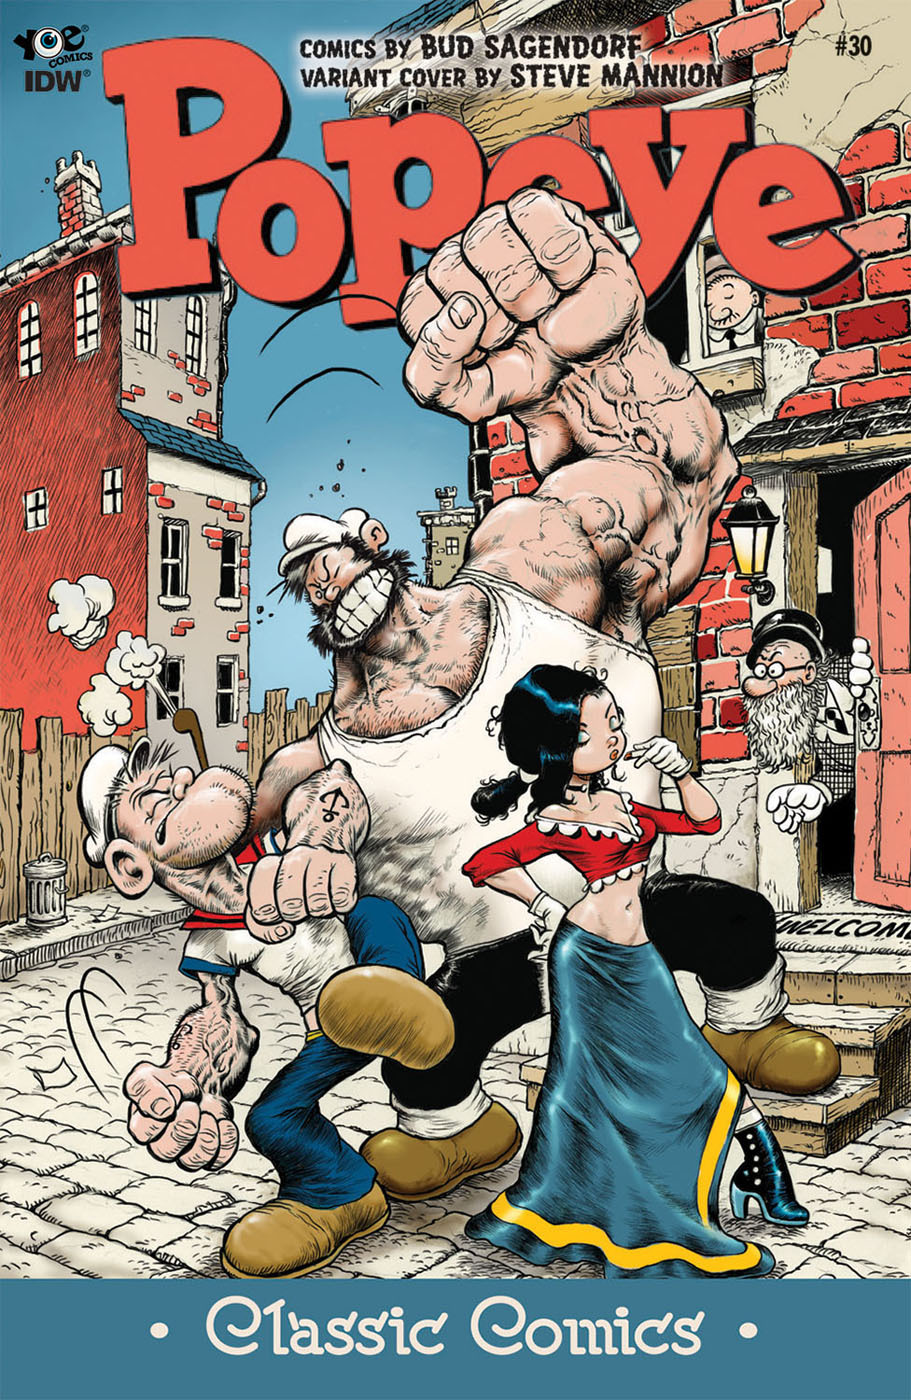 MANNION_Popeye_Cover.jpg